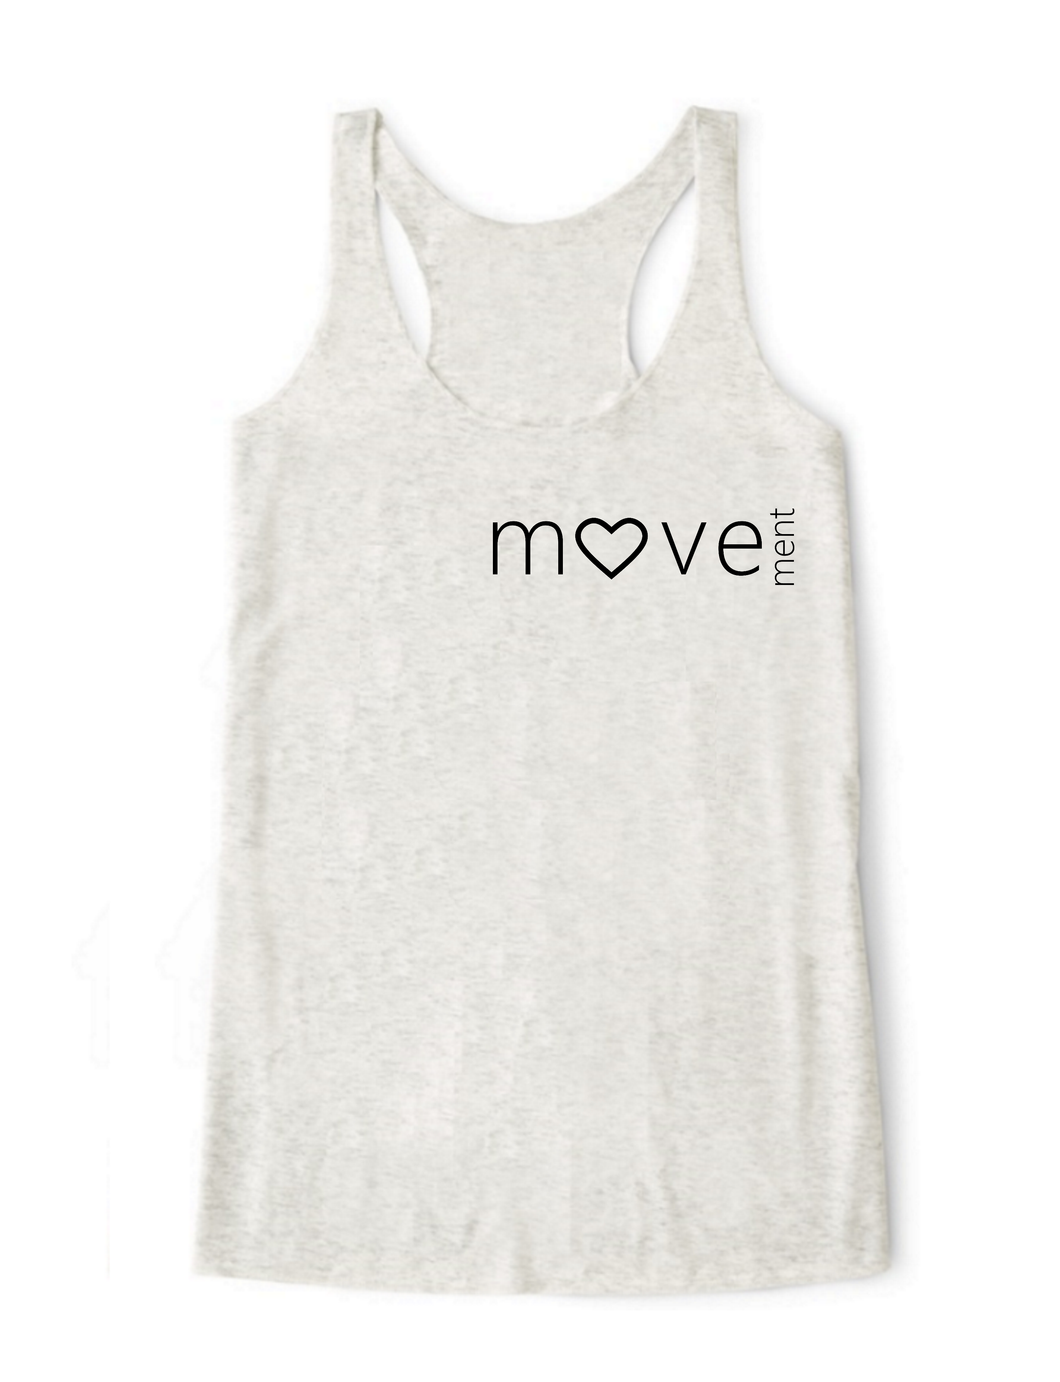 Organic Movement Tank Top - BY DEFINITION